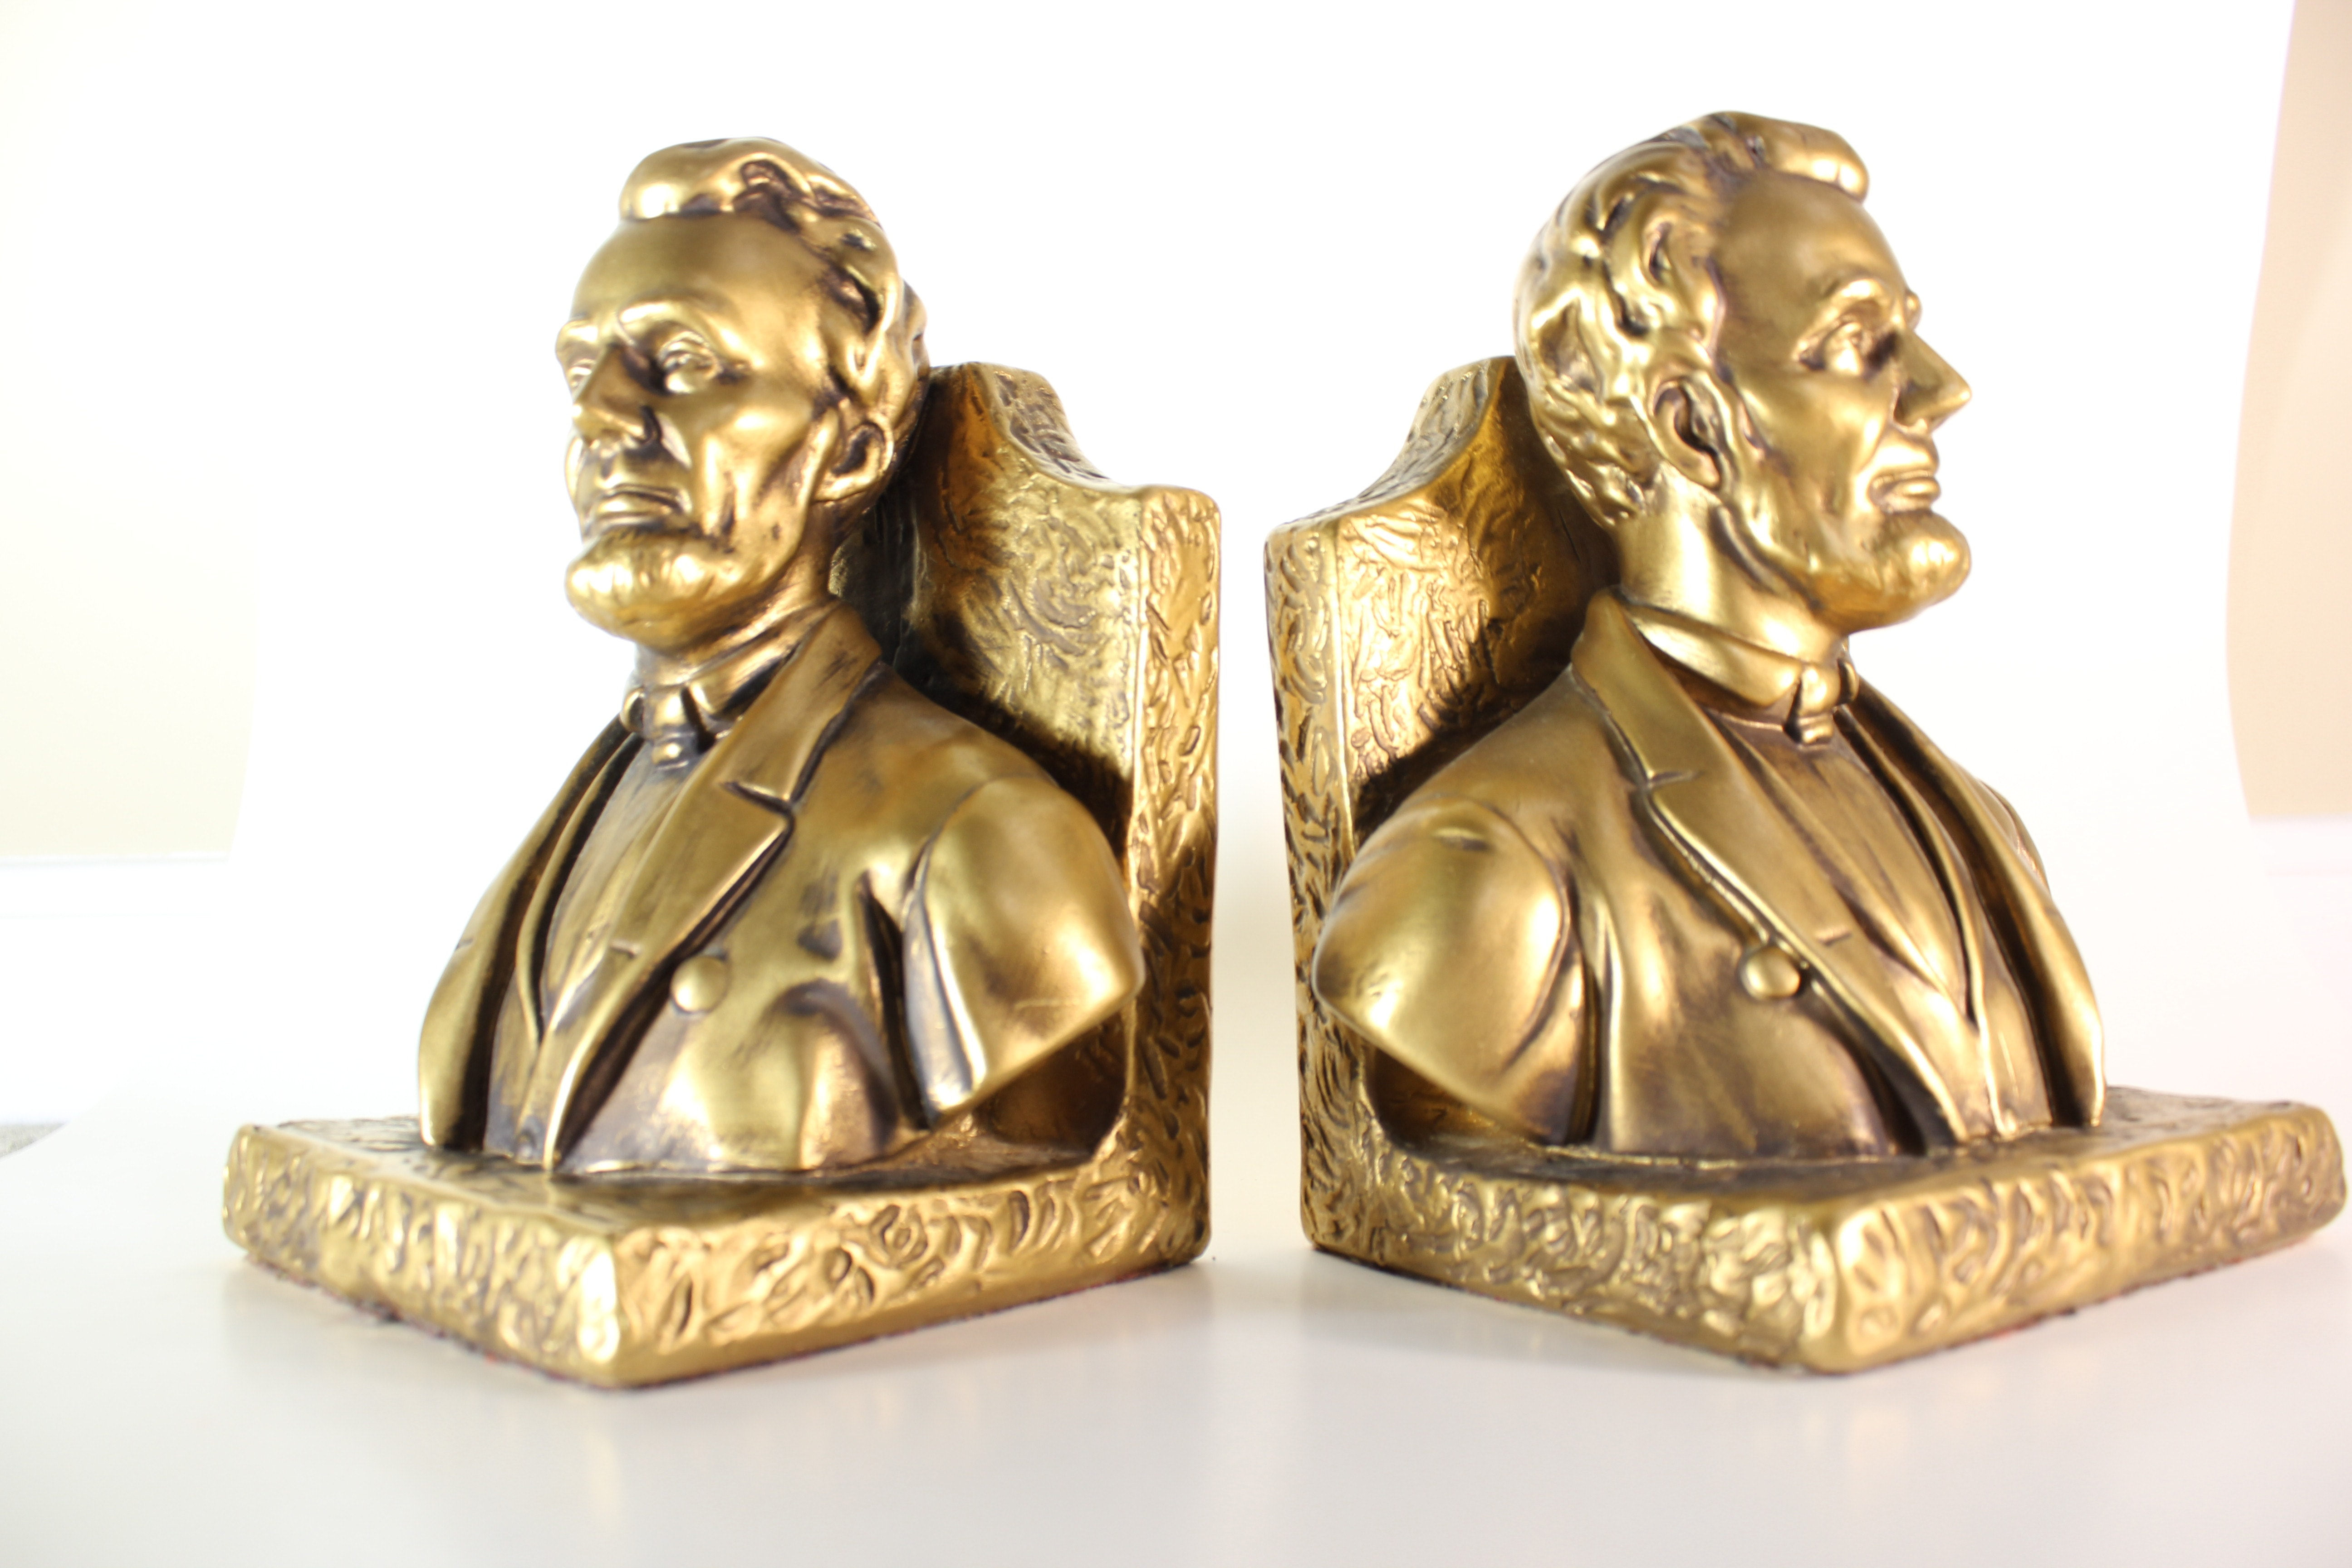 Set of Vintage Gold Abraham Lincoln Bookends